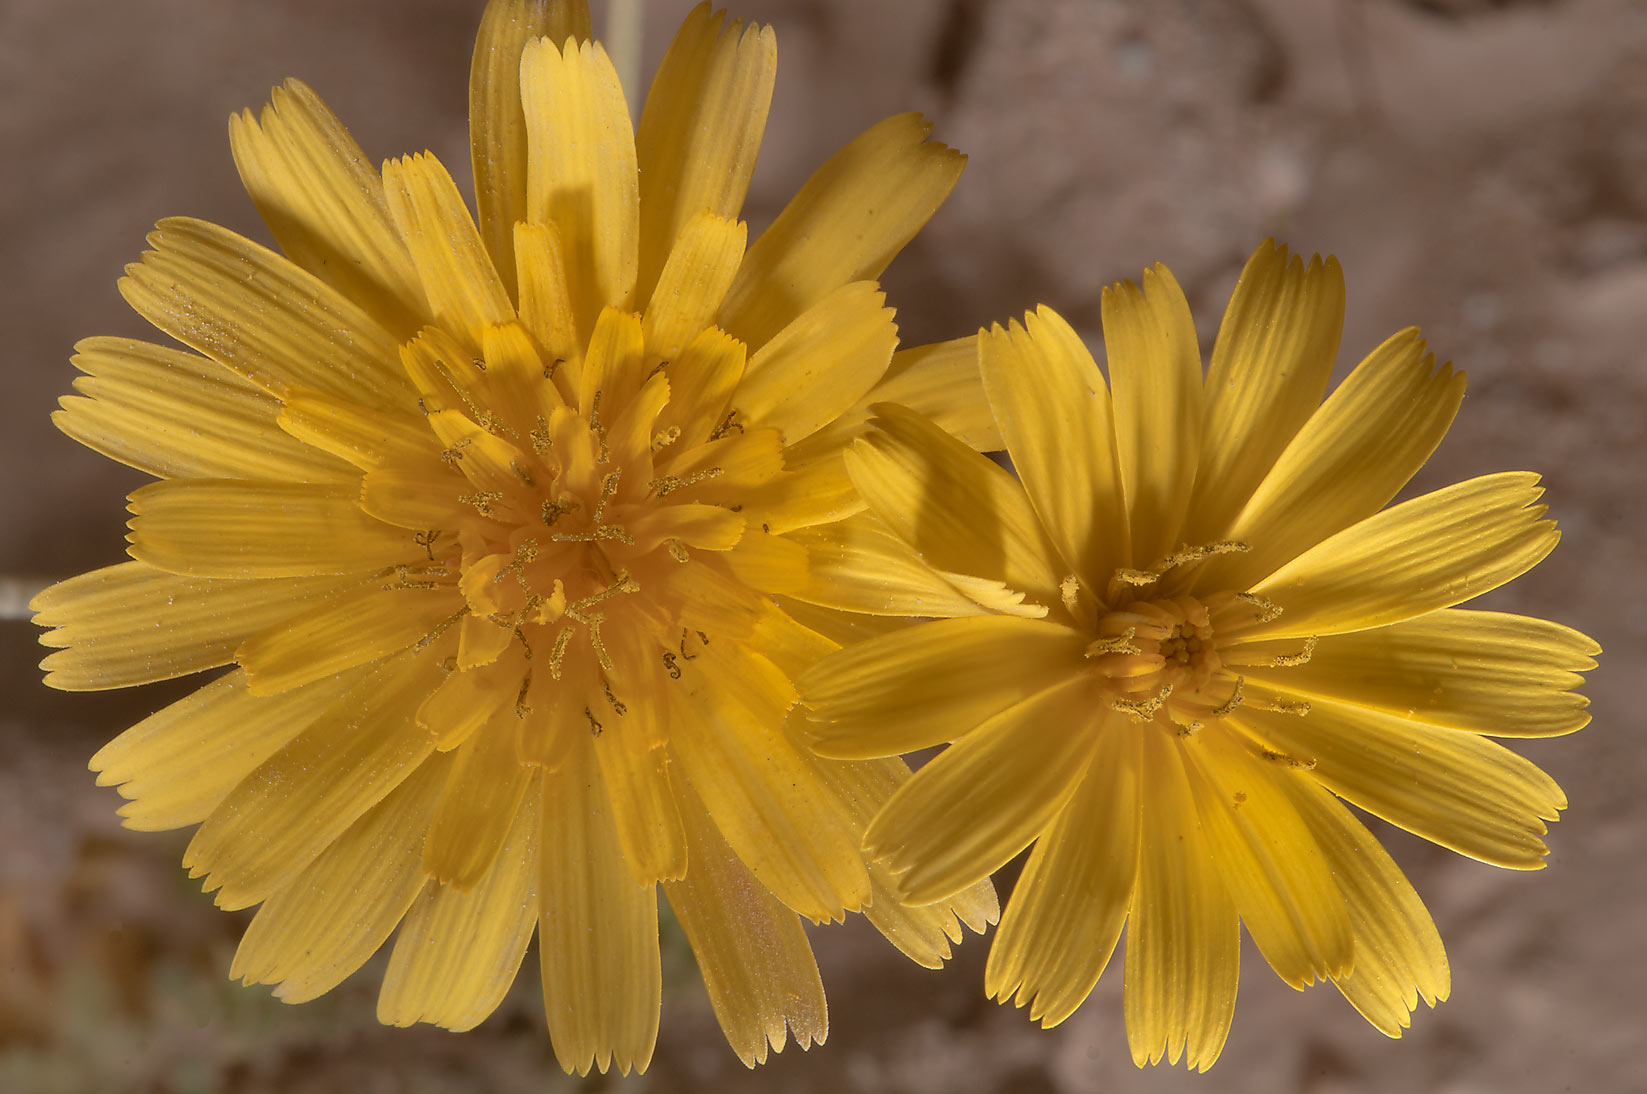 Flowers of Launaea mucronata (local name Huwa...40 miles south-west from Doha. Qatar